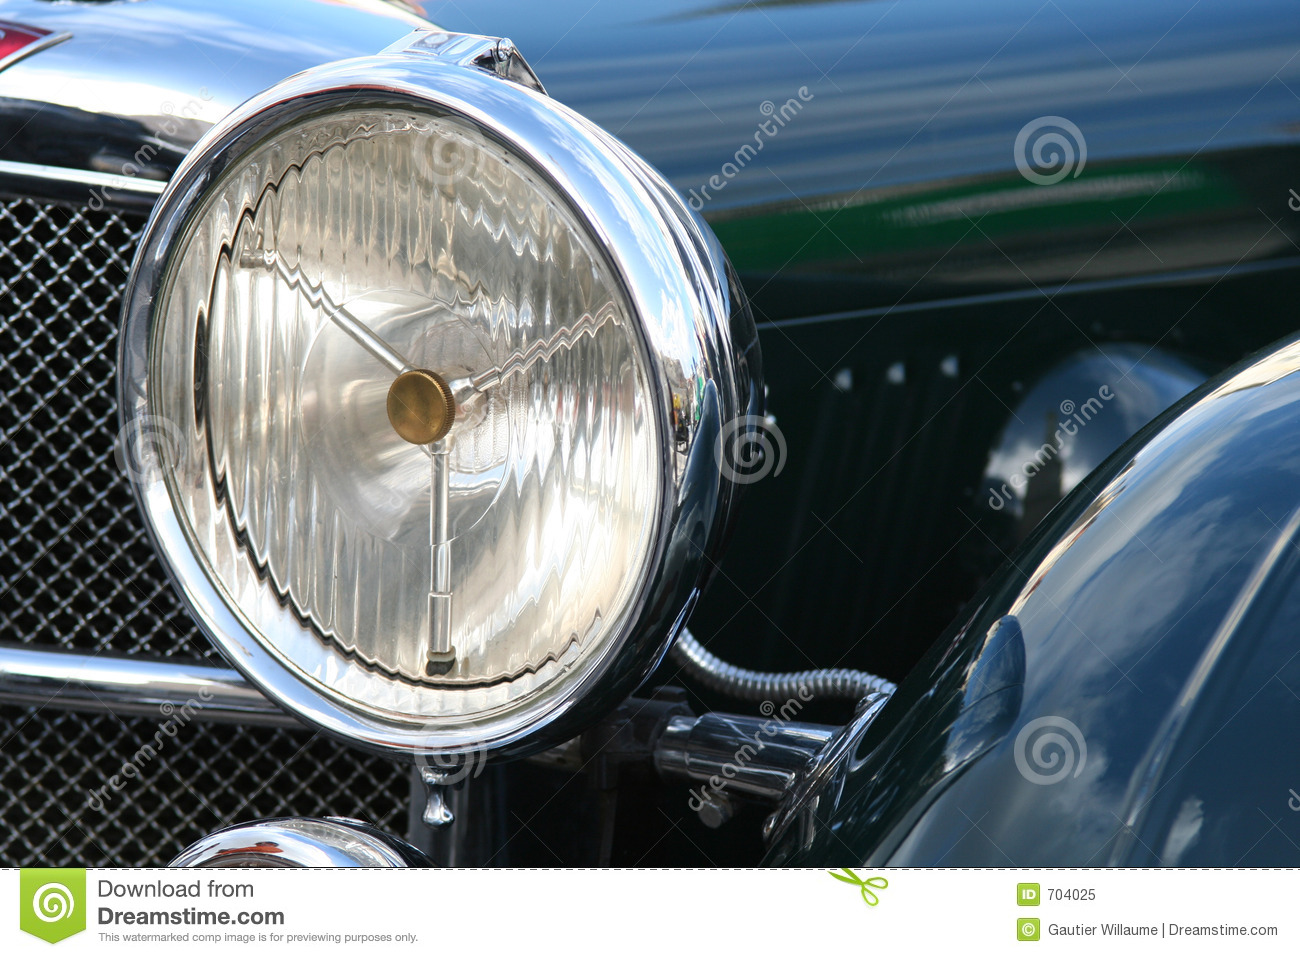 Vintage Car Headlight Stock Image Image Of Cutout European 704025